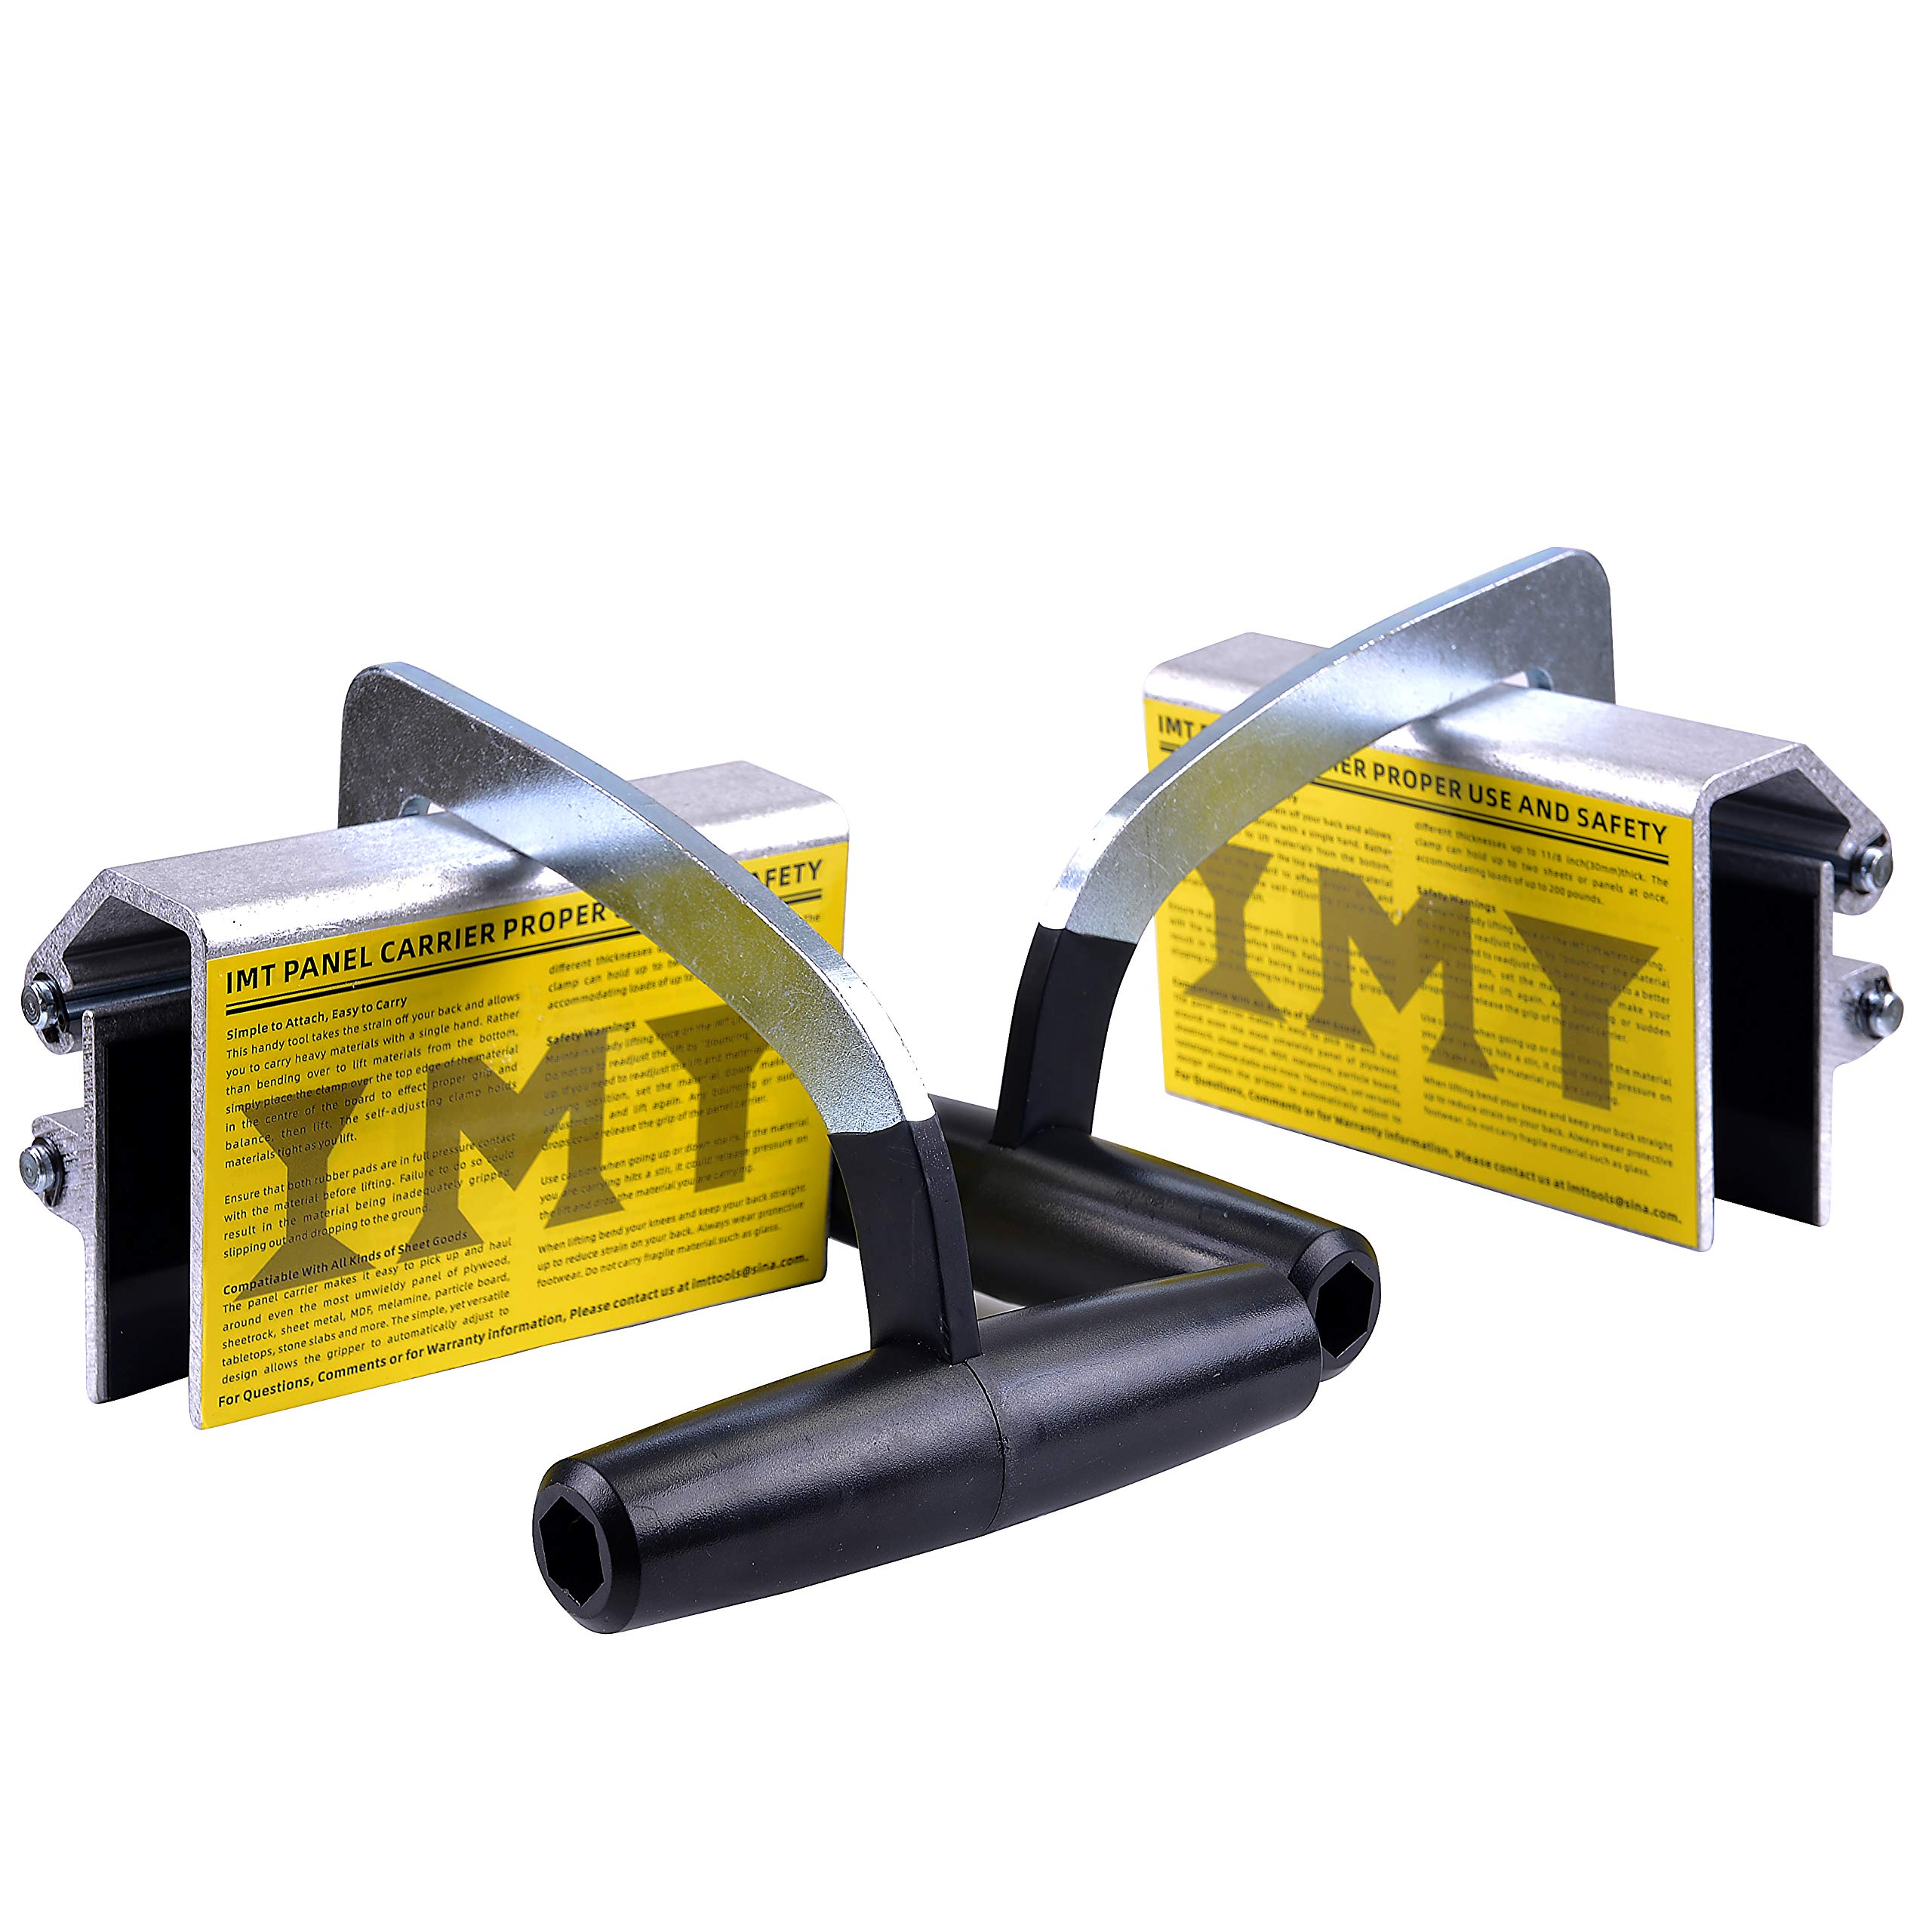 """IMT Panel Carrier 2 Pack, Drywall Power Gripper with Metal Handle, Heavy Duty Sheetrock Lifter Handy Carrying Tool for Wood/Board/Plastic/Sheet Metal/Plywood, Self-Adjusting from 0-1 1/8"""", 200lb"""